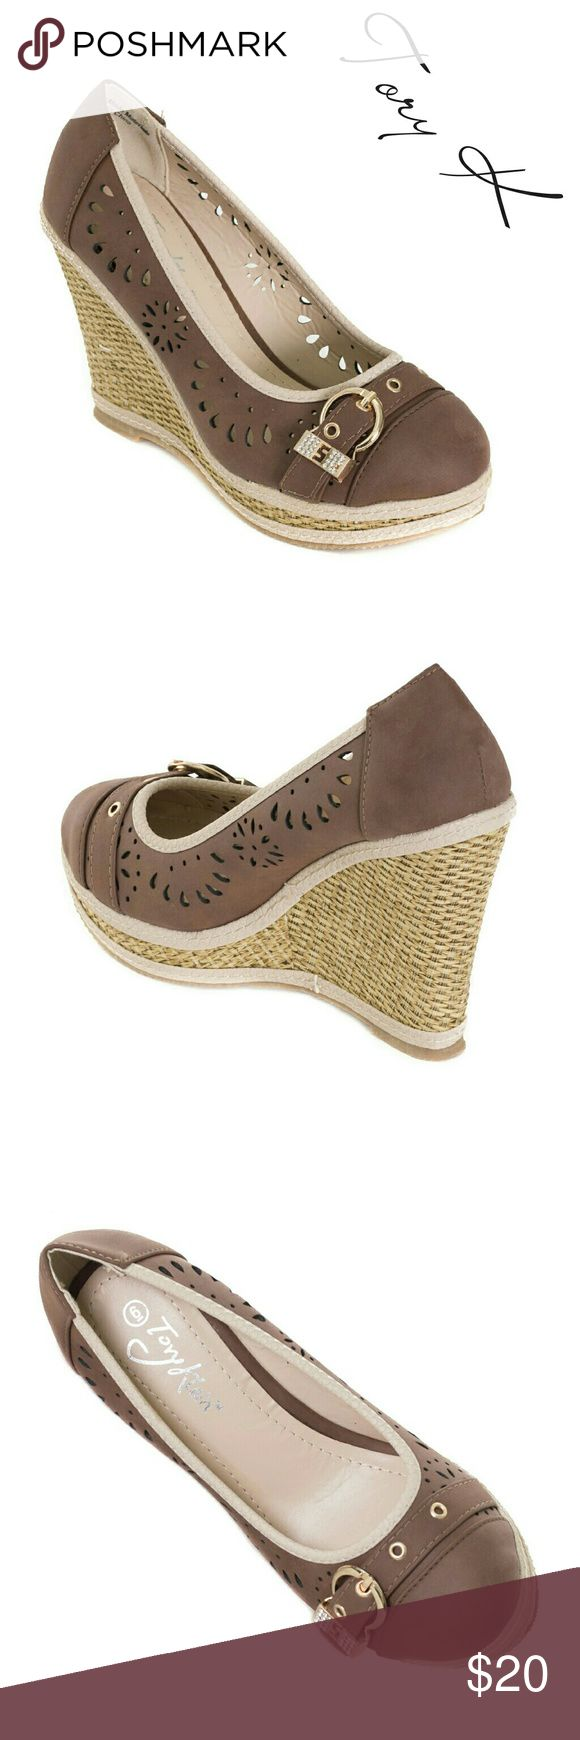 """Women Buckle Wedge Espadrilles, HW-1675, Brown Brand new Tory K perforated woman brown wedge espadrille sandals with a shiny belt-like buckle. 4"""" woven platform, these run a bit small. PU leather. A true statement in ladies shoes fashion! Size 9 measures 9.5 inches on the inside of the sole, all sizes are half an inch apart in length. Tory K  Shoes Wedges"""